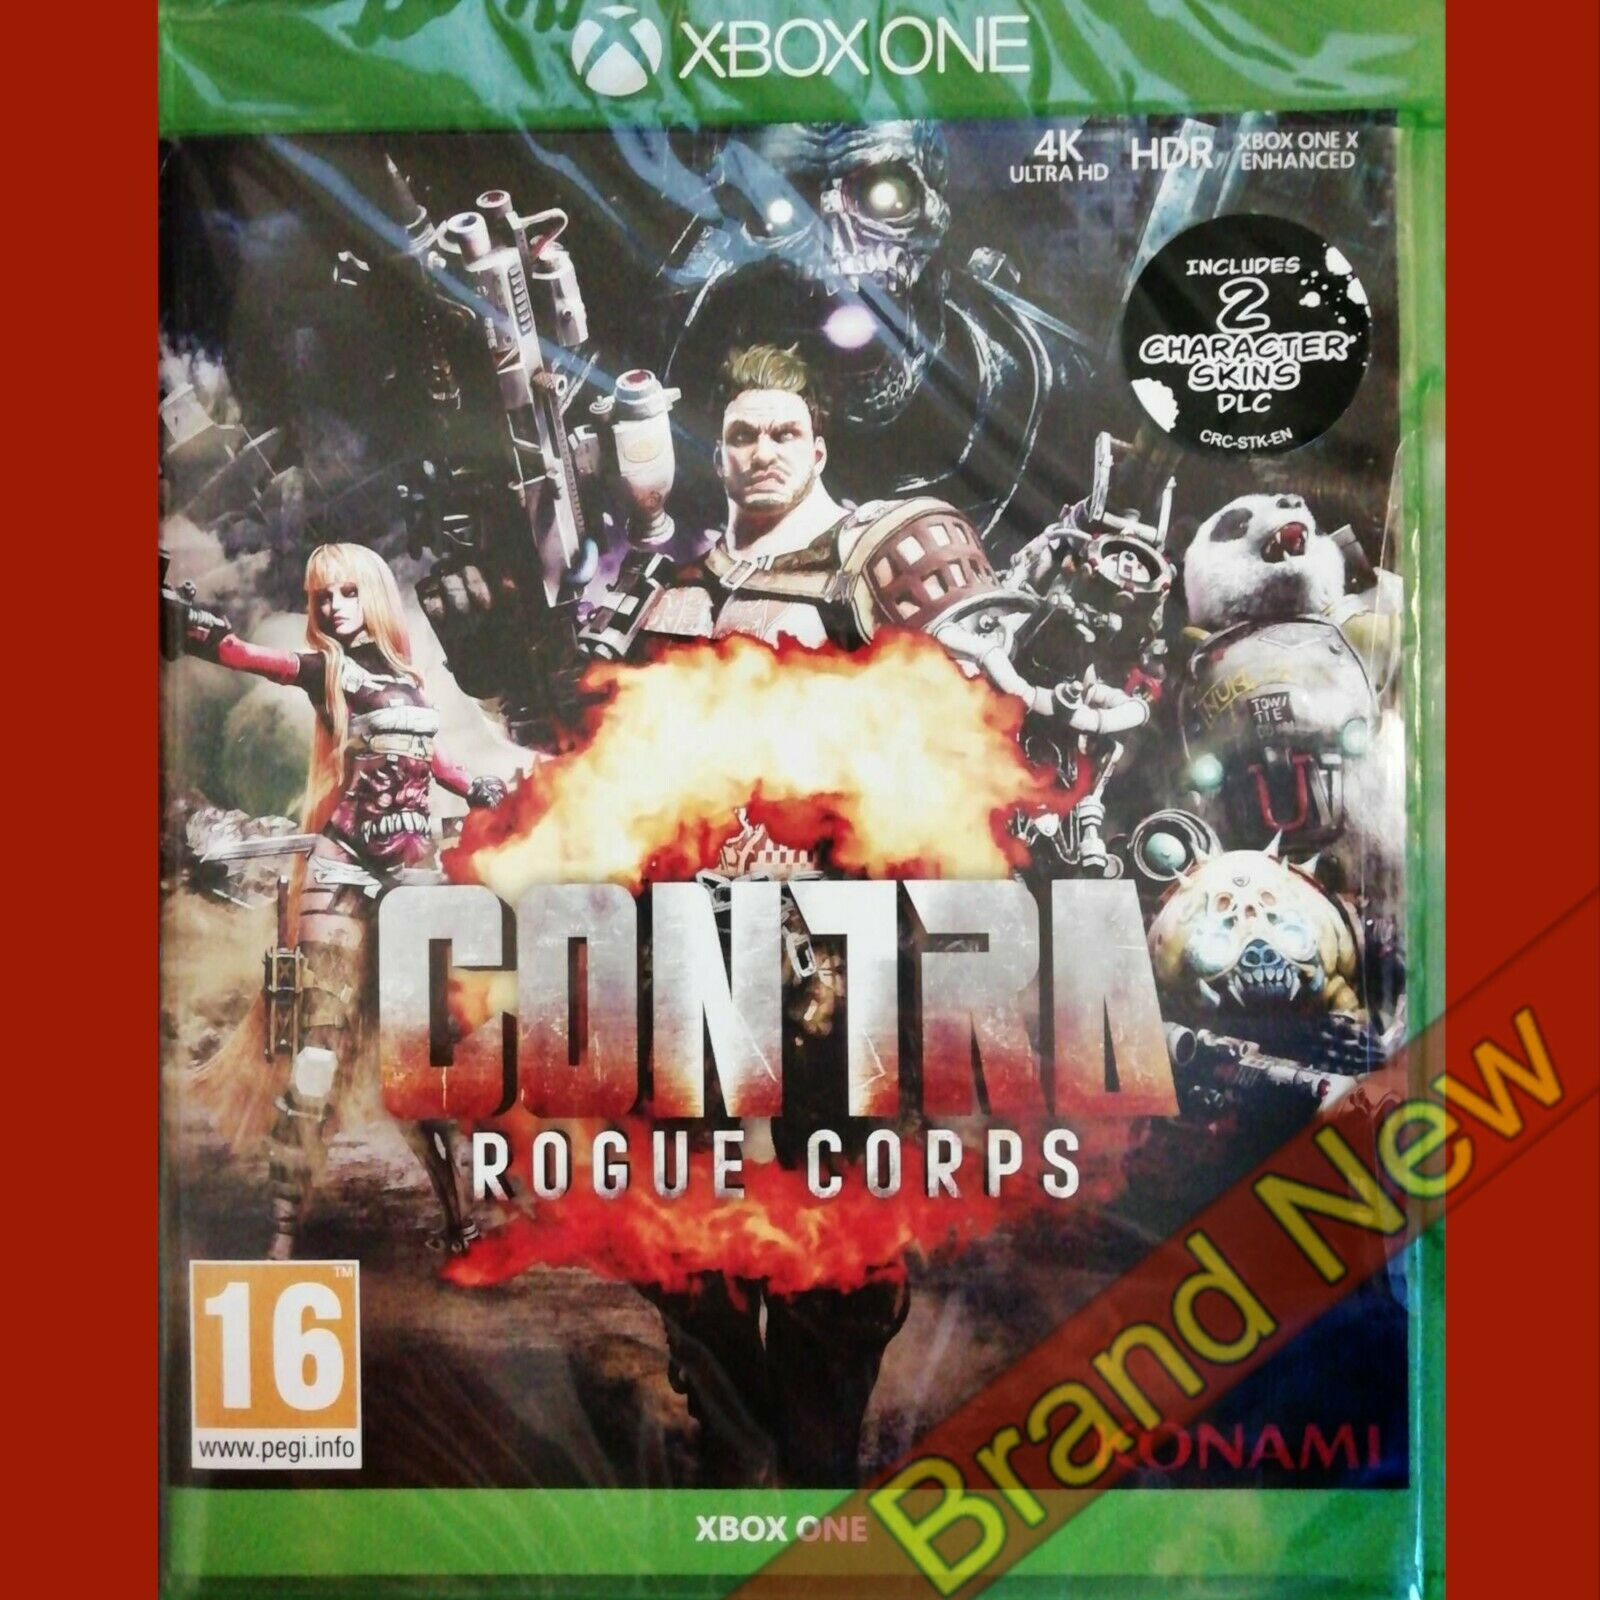 CONTRA ROGUE CORPS - Xbox ONE ~16+ Brand New & Sealed